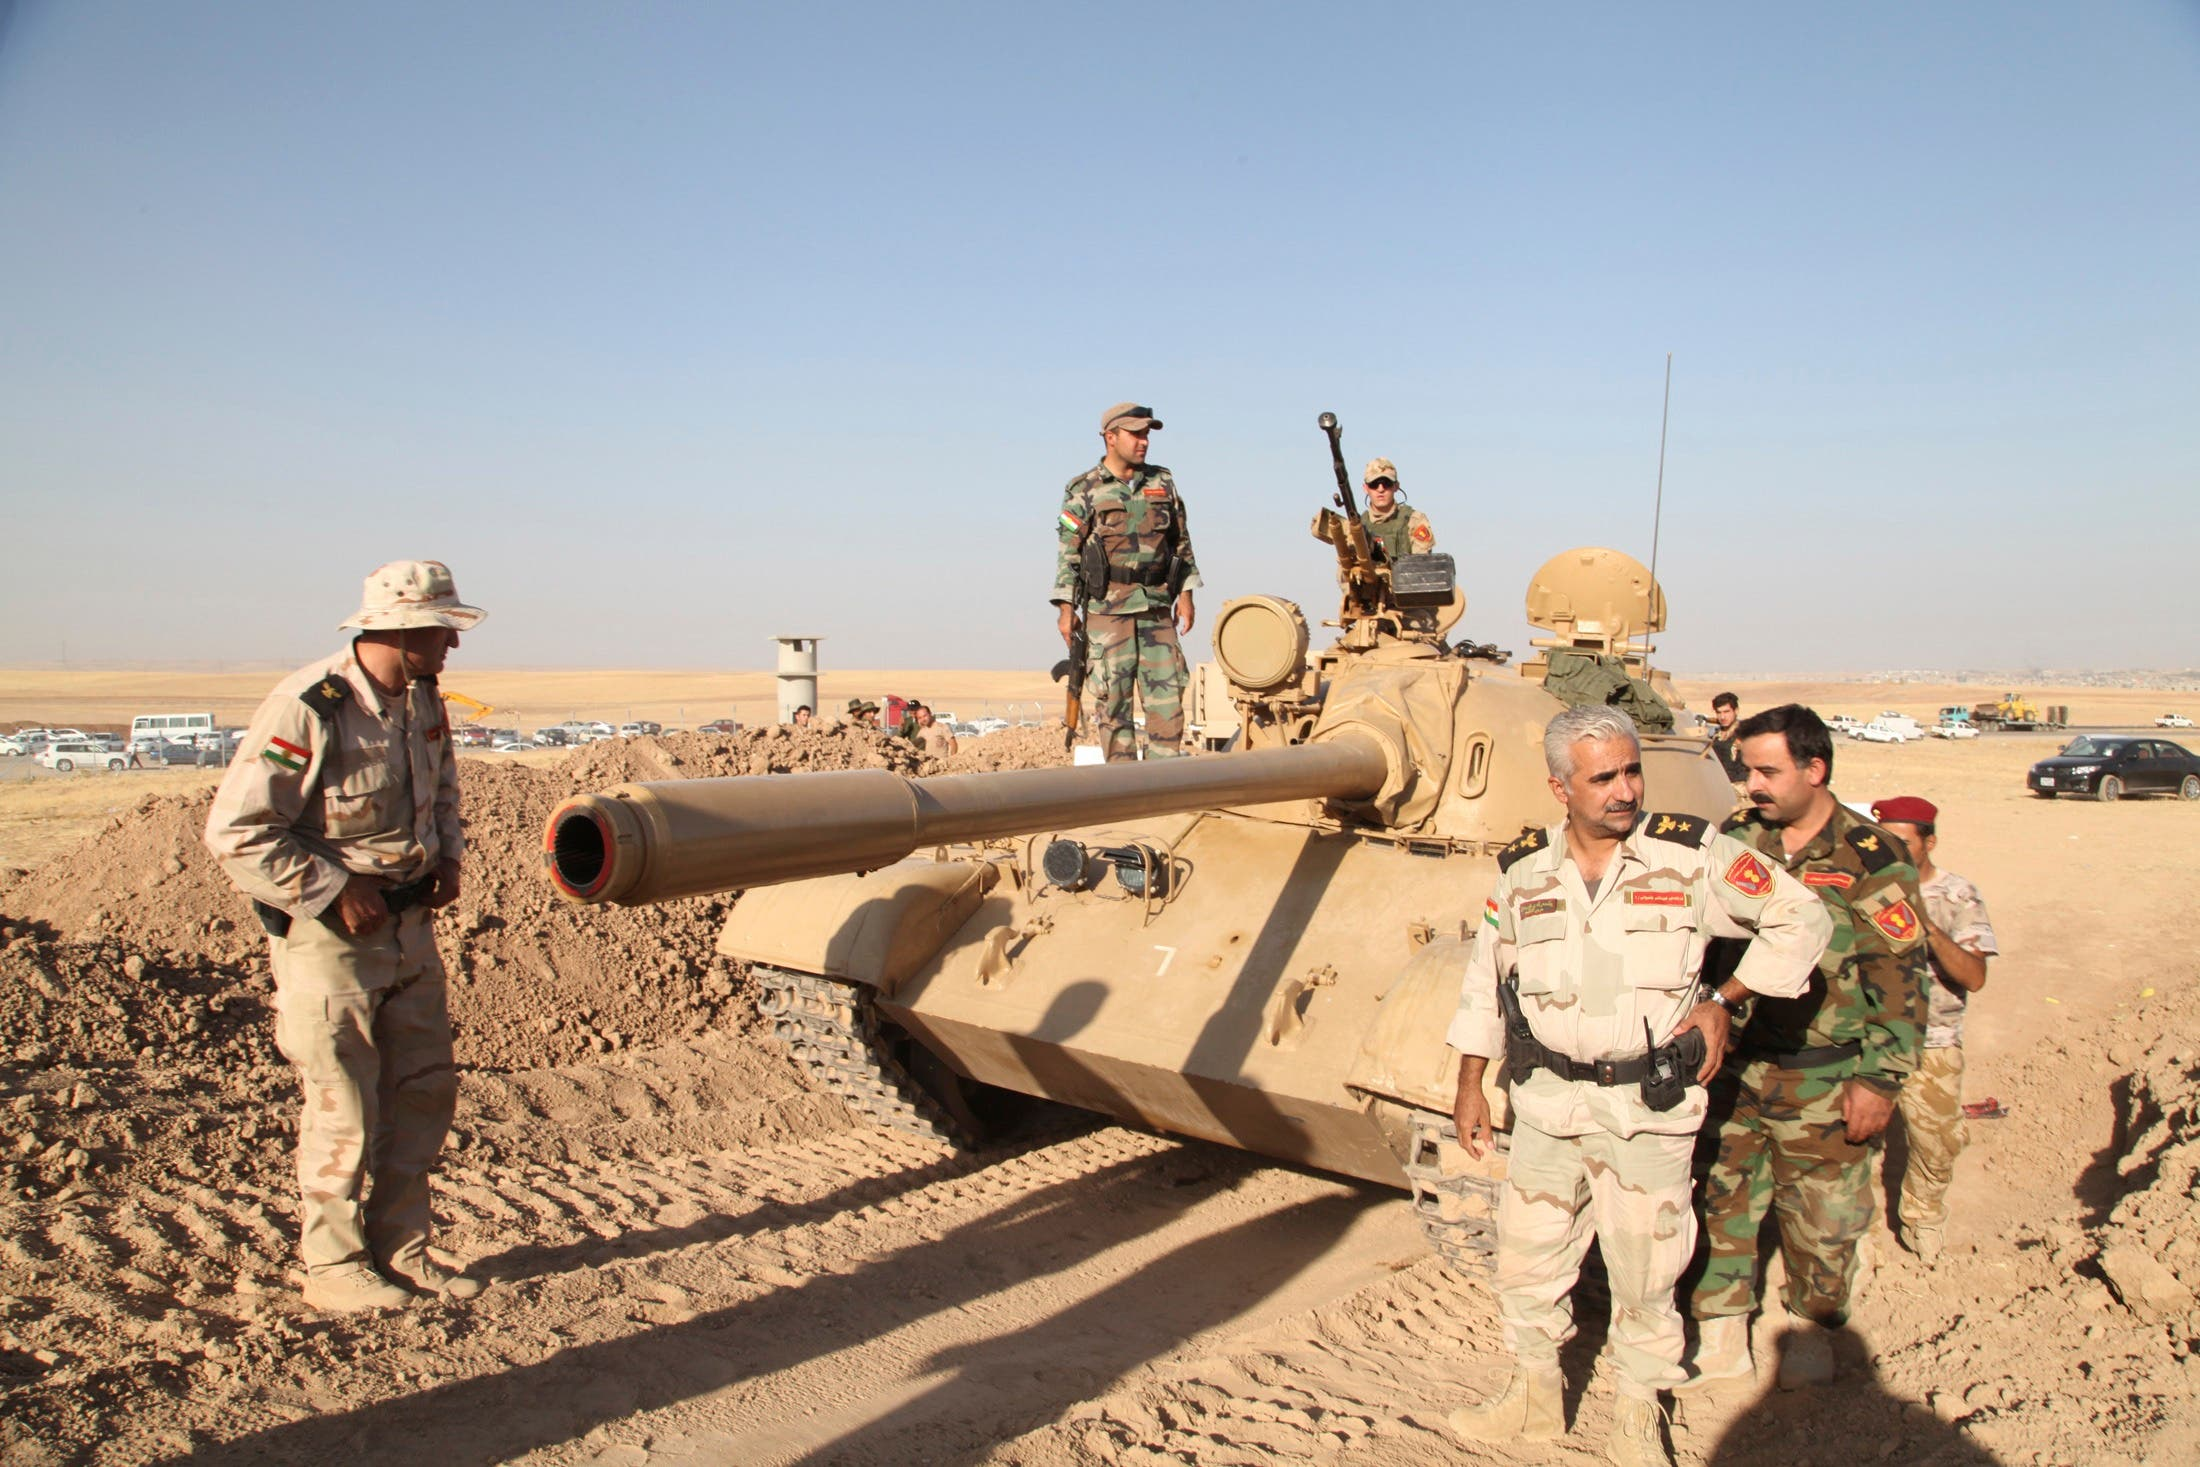 Kurdish peshmerga troops participate in an intensive security deployment against Islamic State militants on the front line in Khazer August 8, 2014.